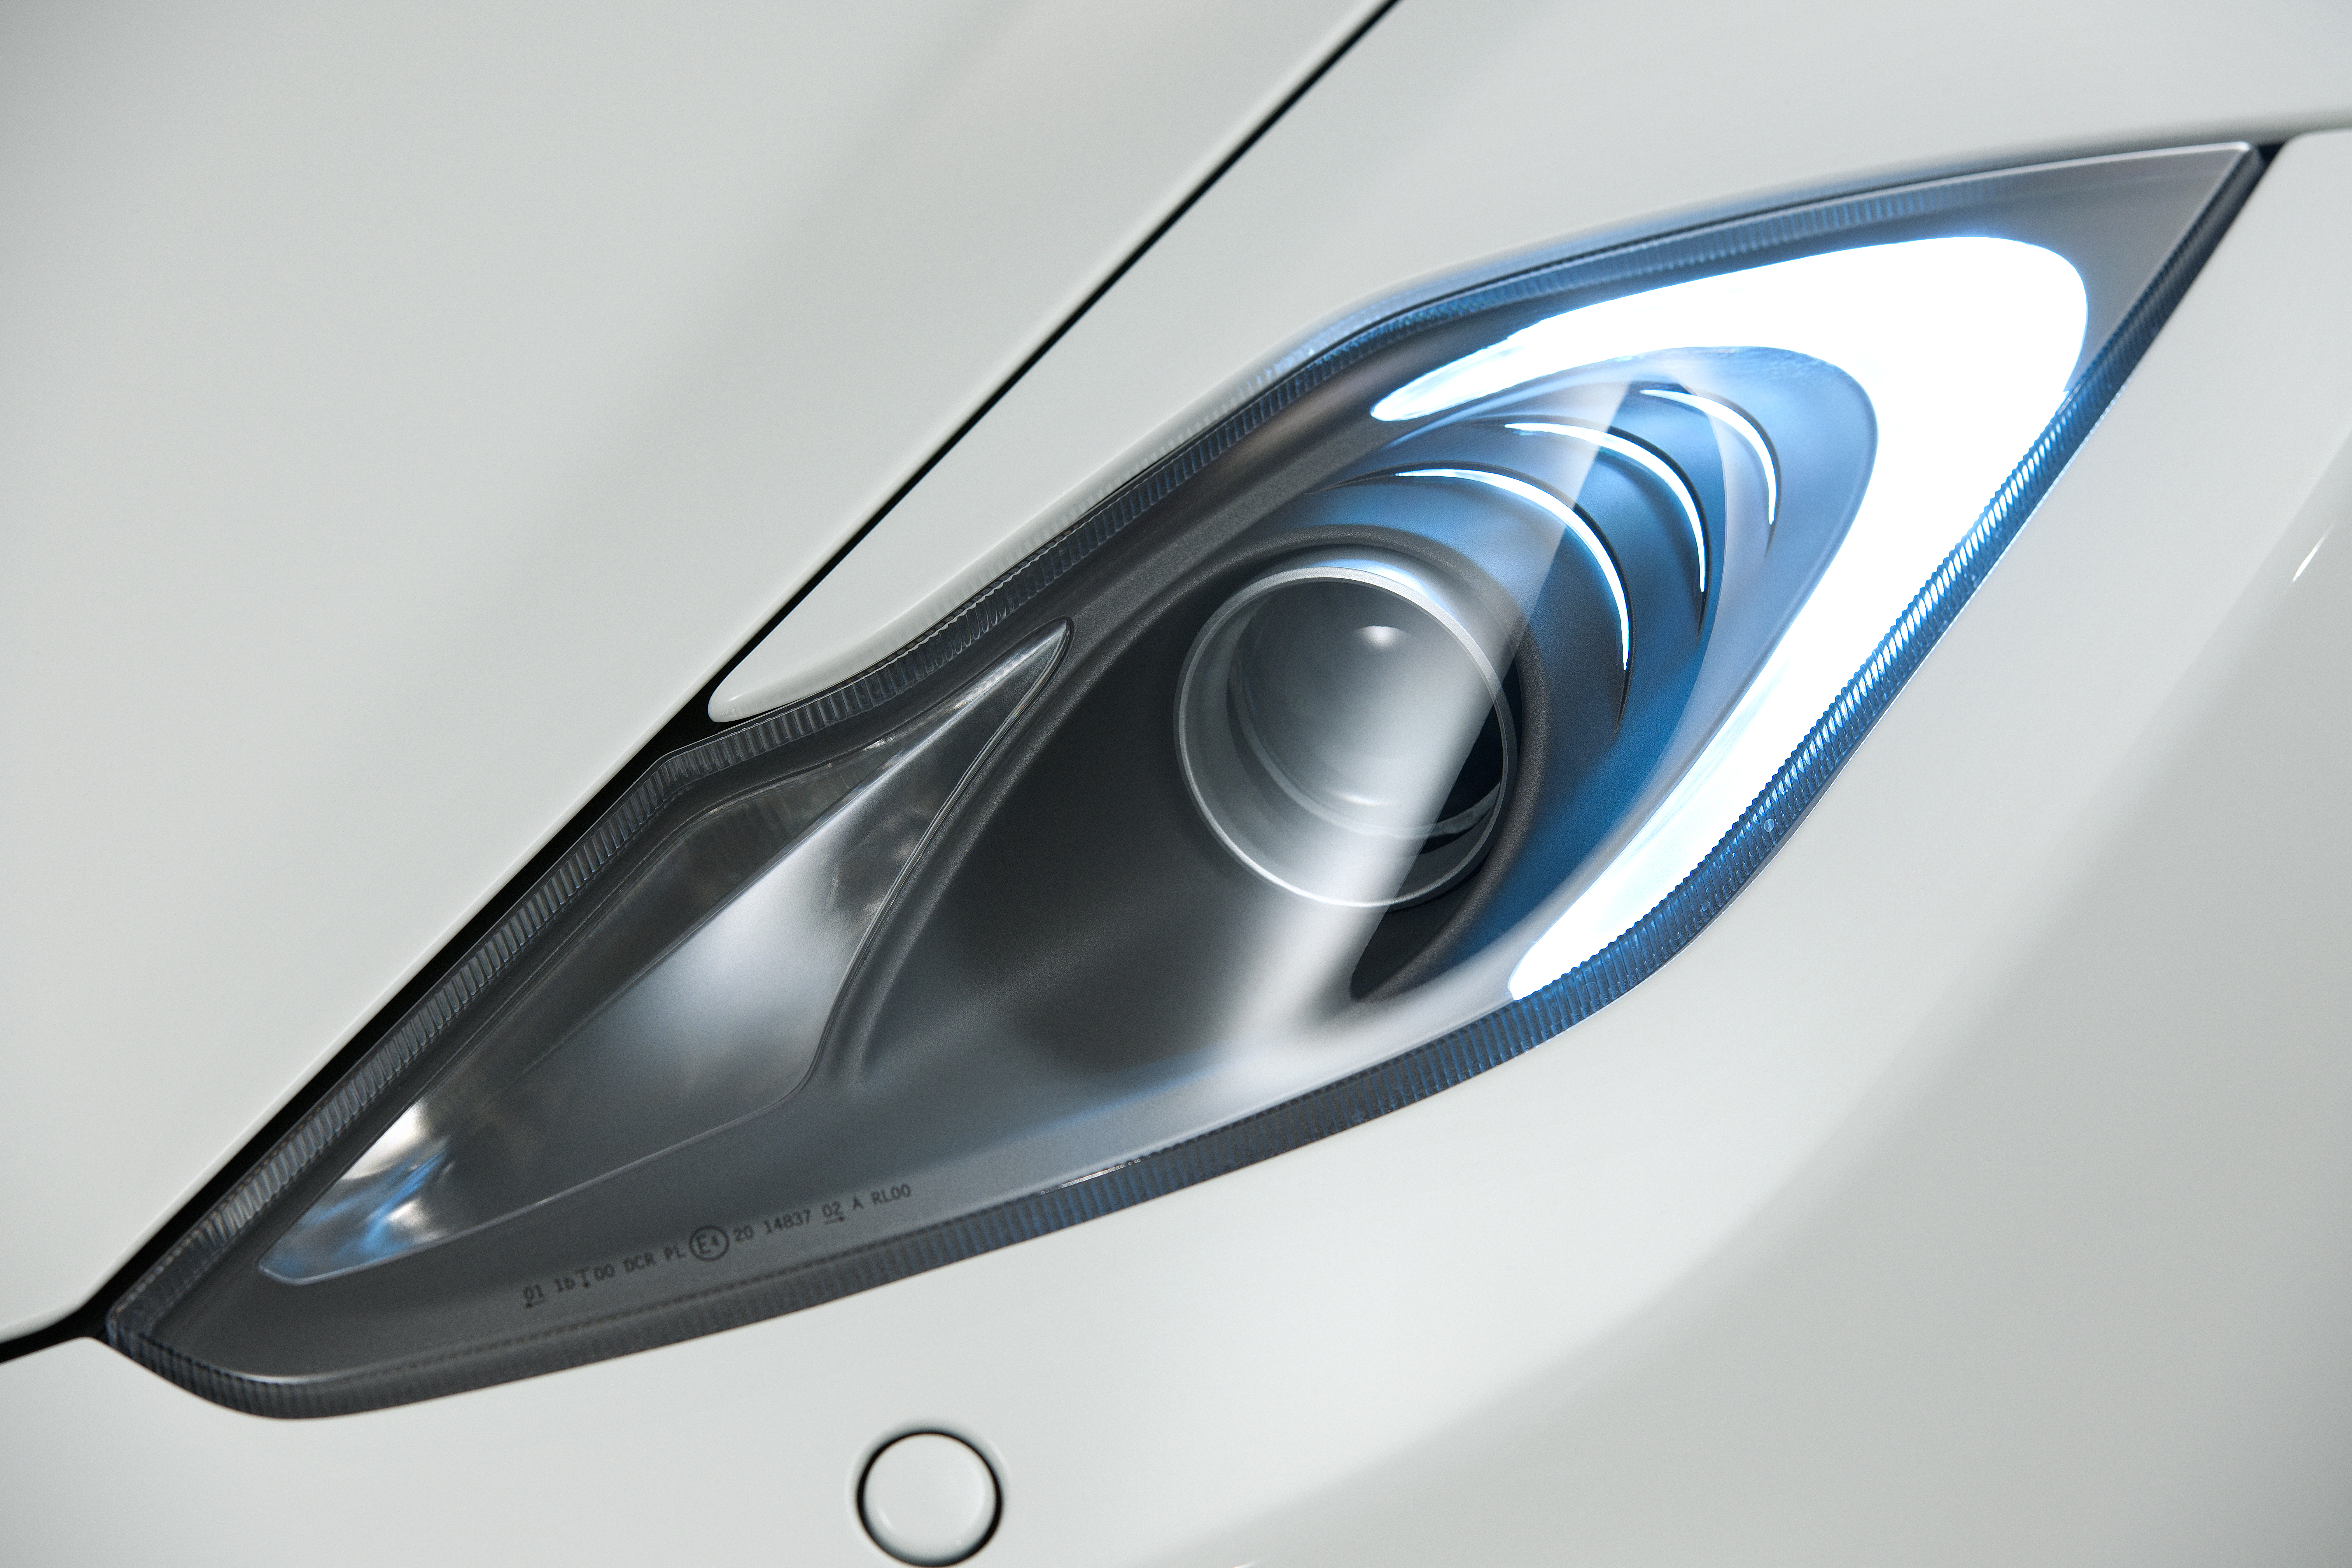 McLaren MP4-12C 2012 white front light detail